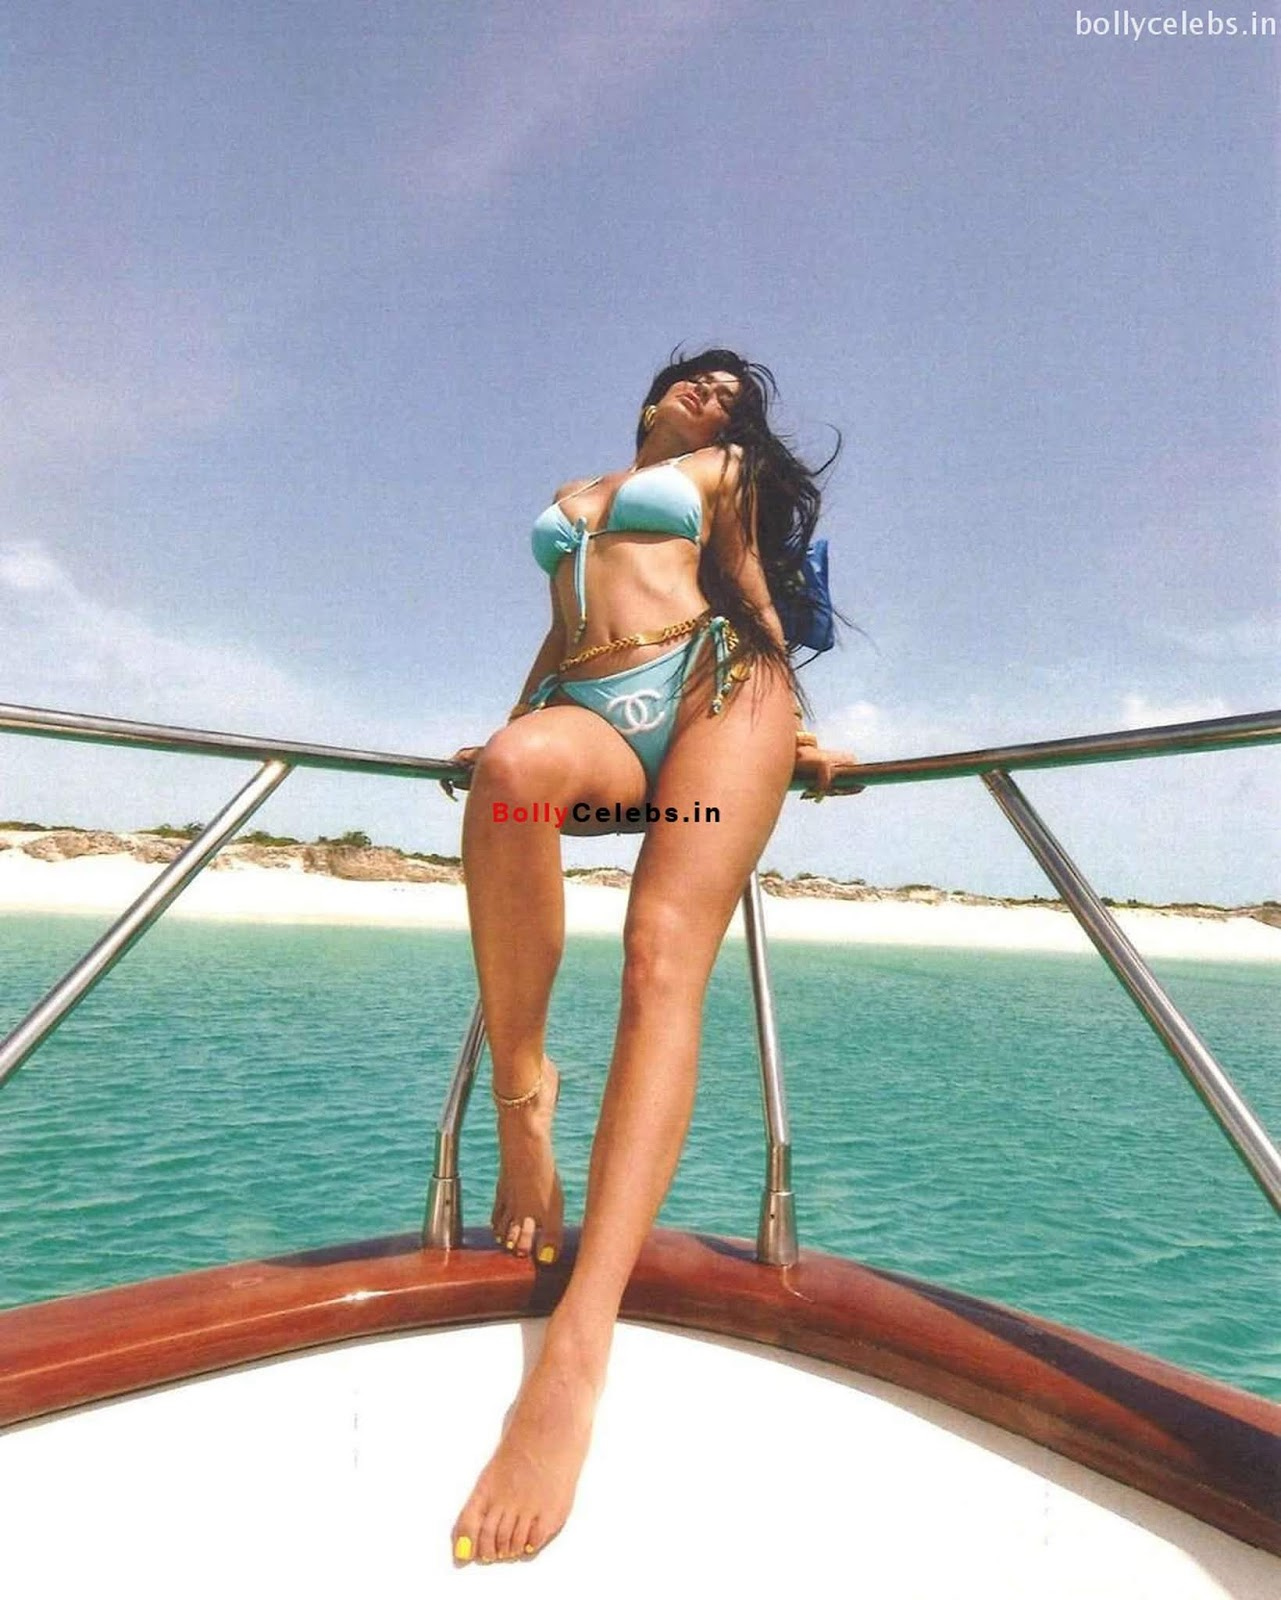 Kylie Jenner in Blue Bikini Exposing Huge ass and Boobs WOW bollycelebs.in Exclusive Pics